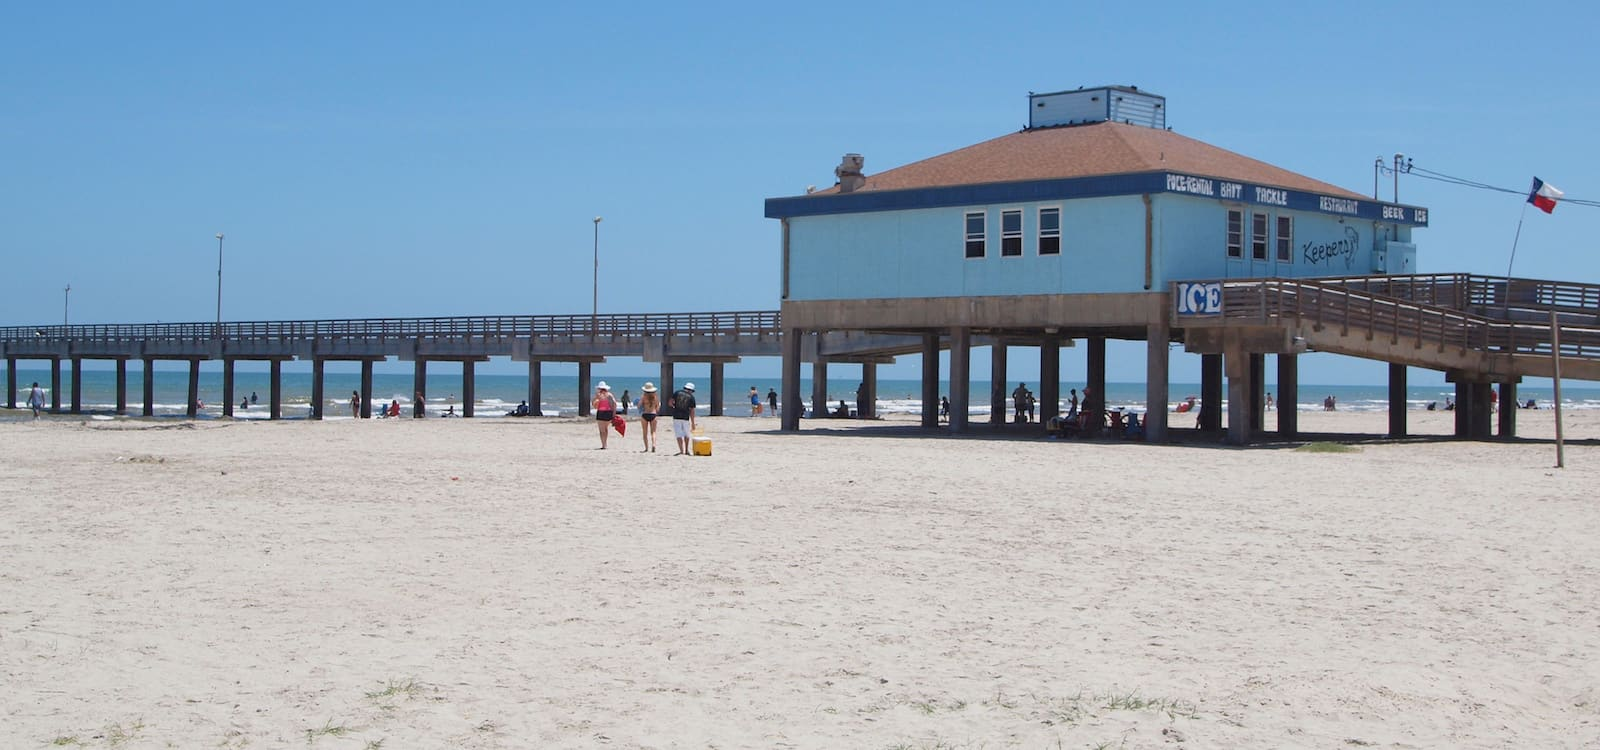 Mustang Island, Texas, Galveston Texas, Texas, Best beaches of Texas, Mustang Island Visitors Guide, Mustang Island beaches, Texas beaches